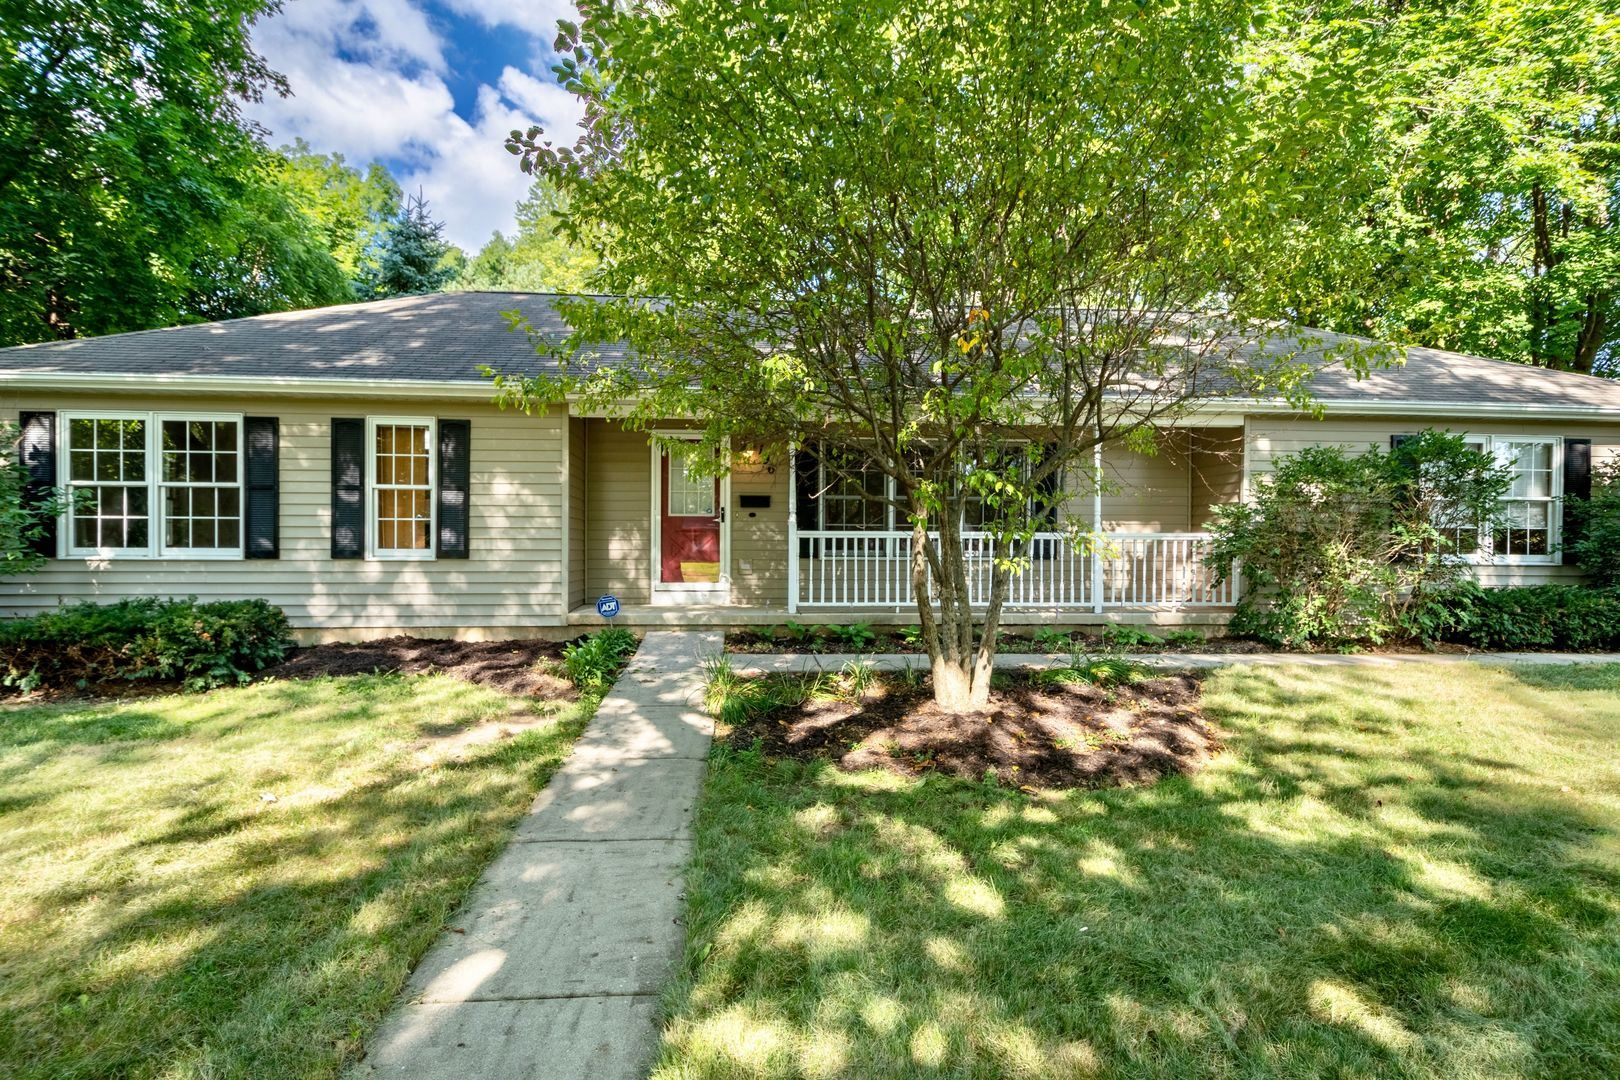 196 Lincoln Parkway, Crystal Lake, IL 60014 - #: 10809784